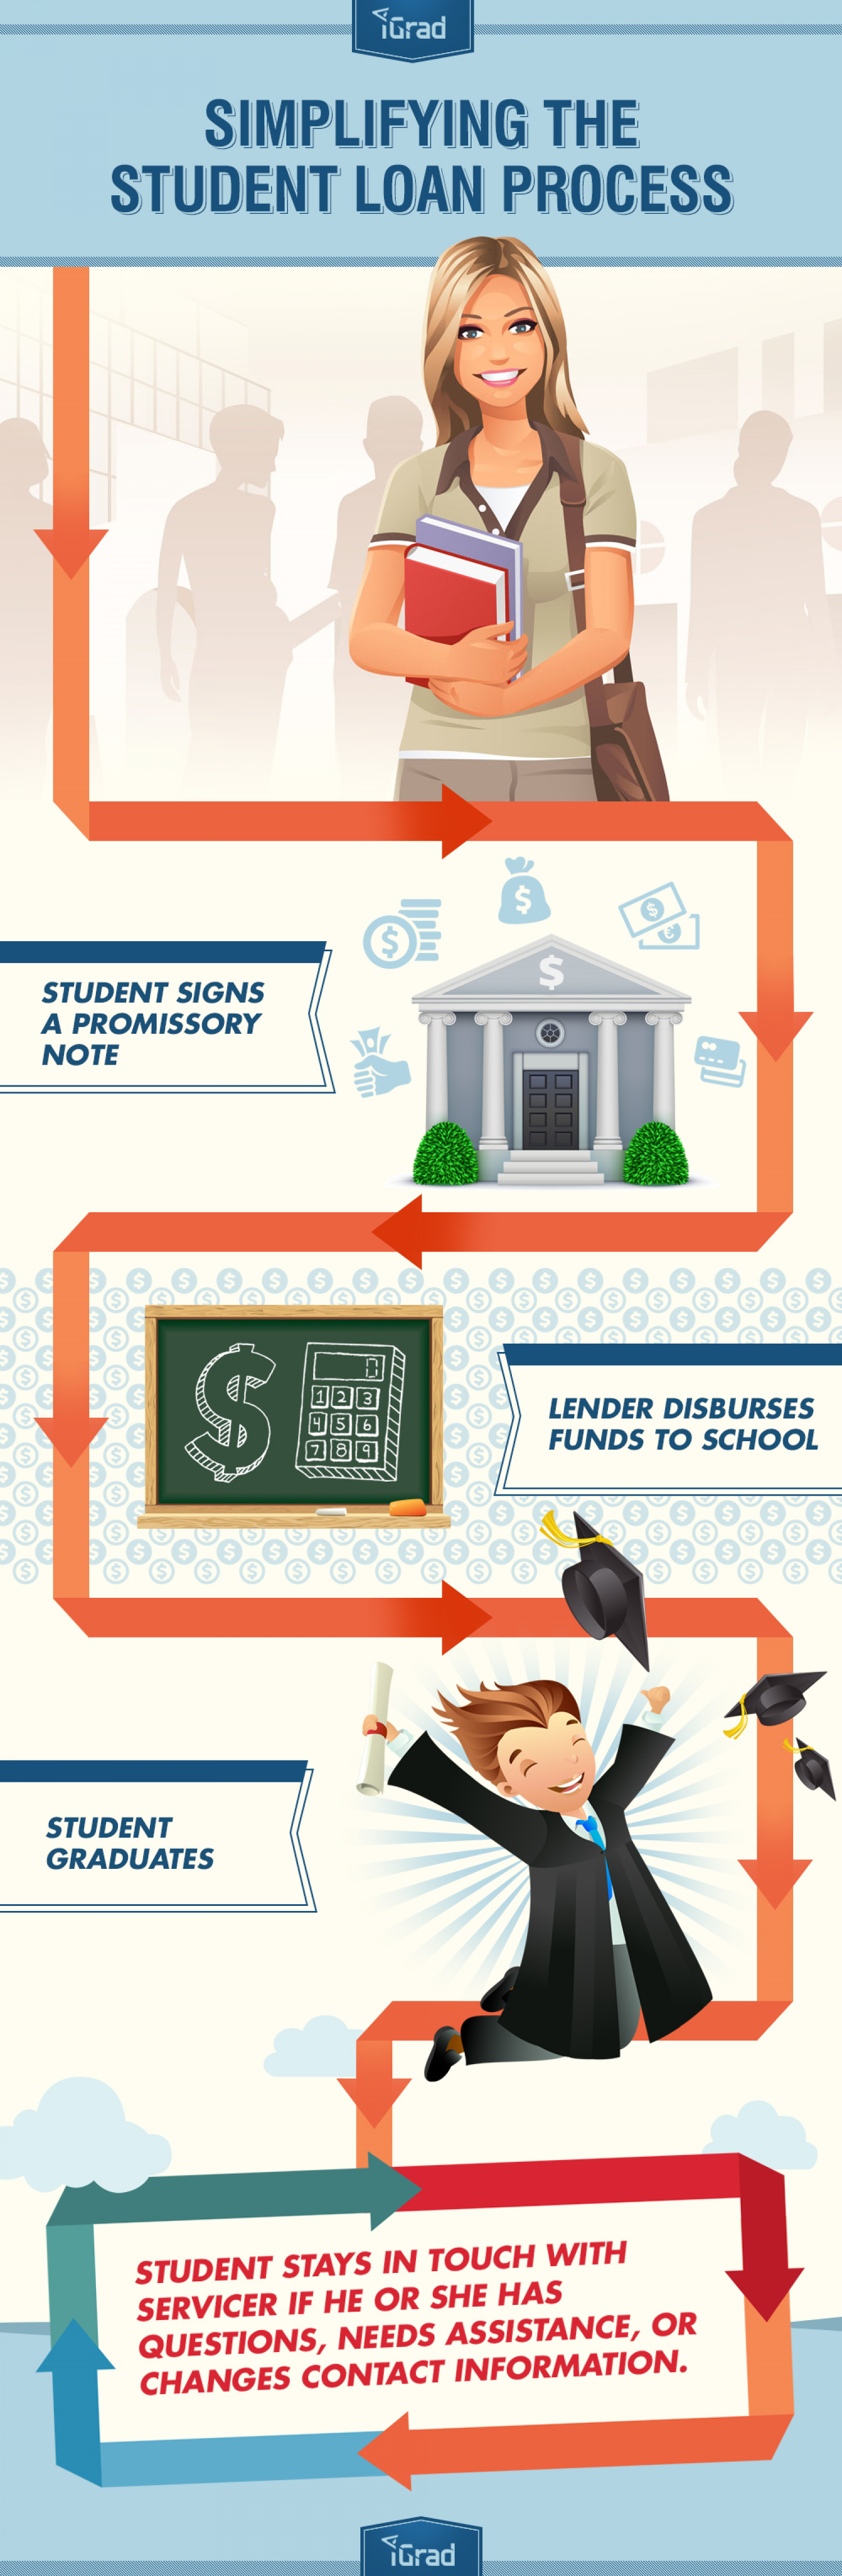 Simplifying the Student Loan Process Infographic